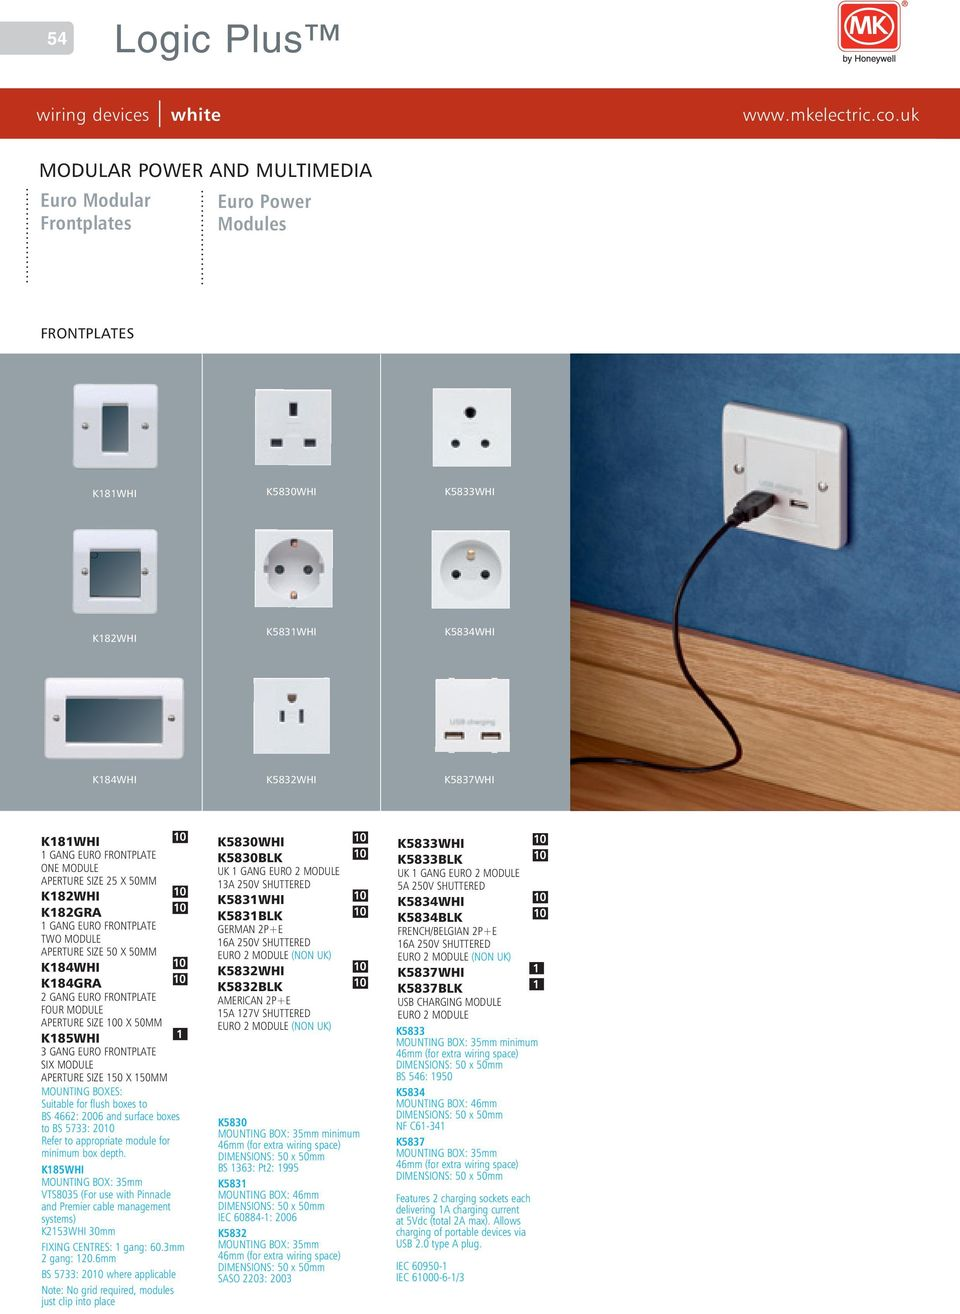 Logic Plus Wiring Devices White Pdf An Mk Socket Gang Euro Frontplate Six Module Aperture Size 150 X 150mm Suitable For Flush Boxes To Bs